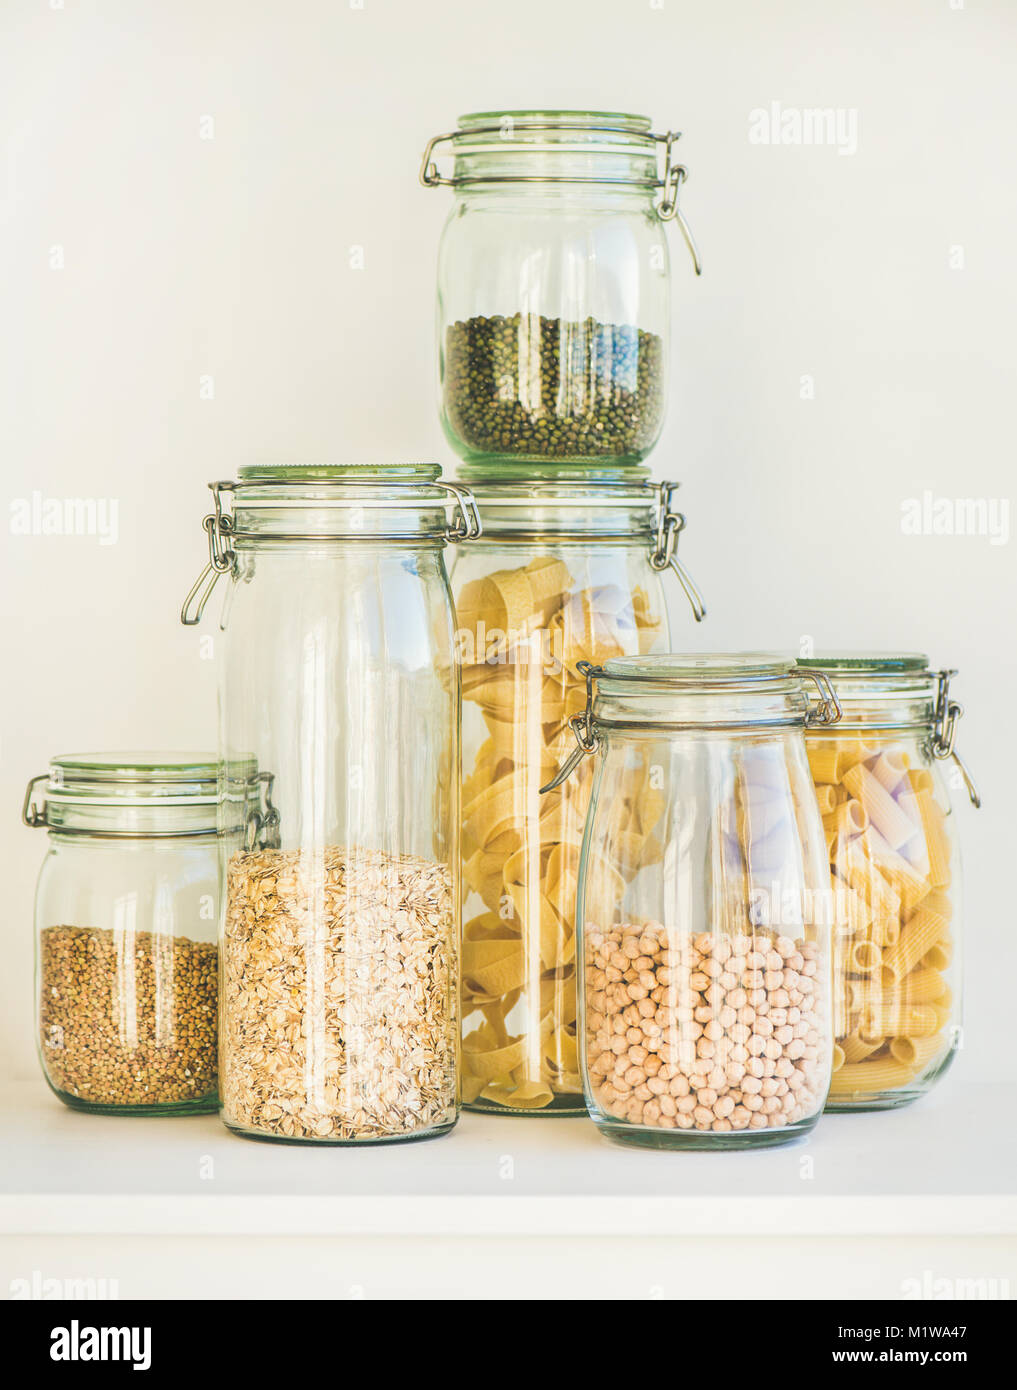 Raw cereals, grains, beans and pasta for healthy cooking Stock Photo